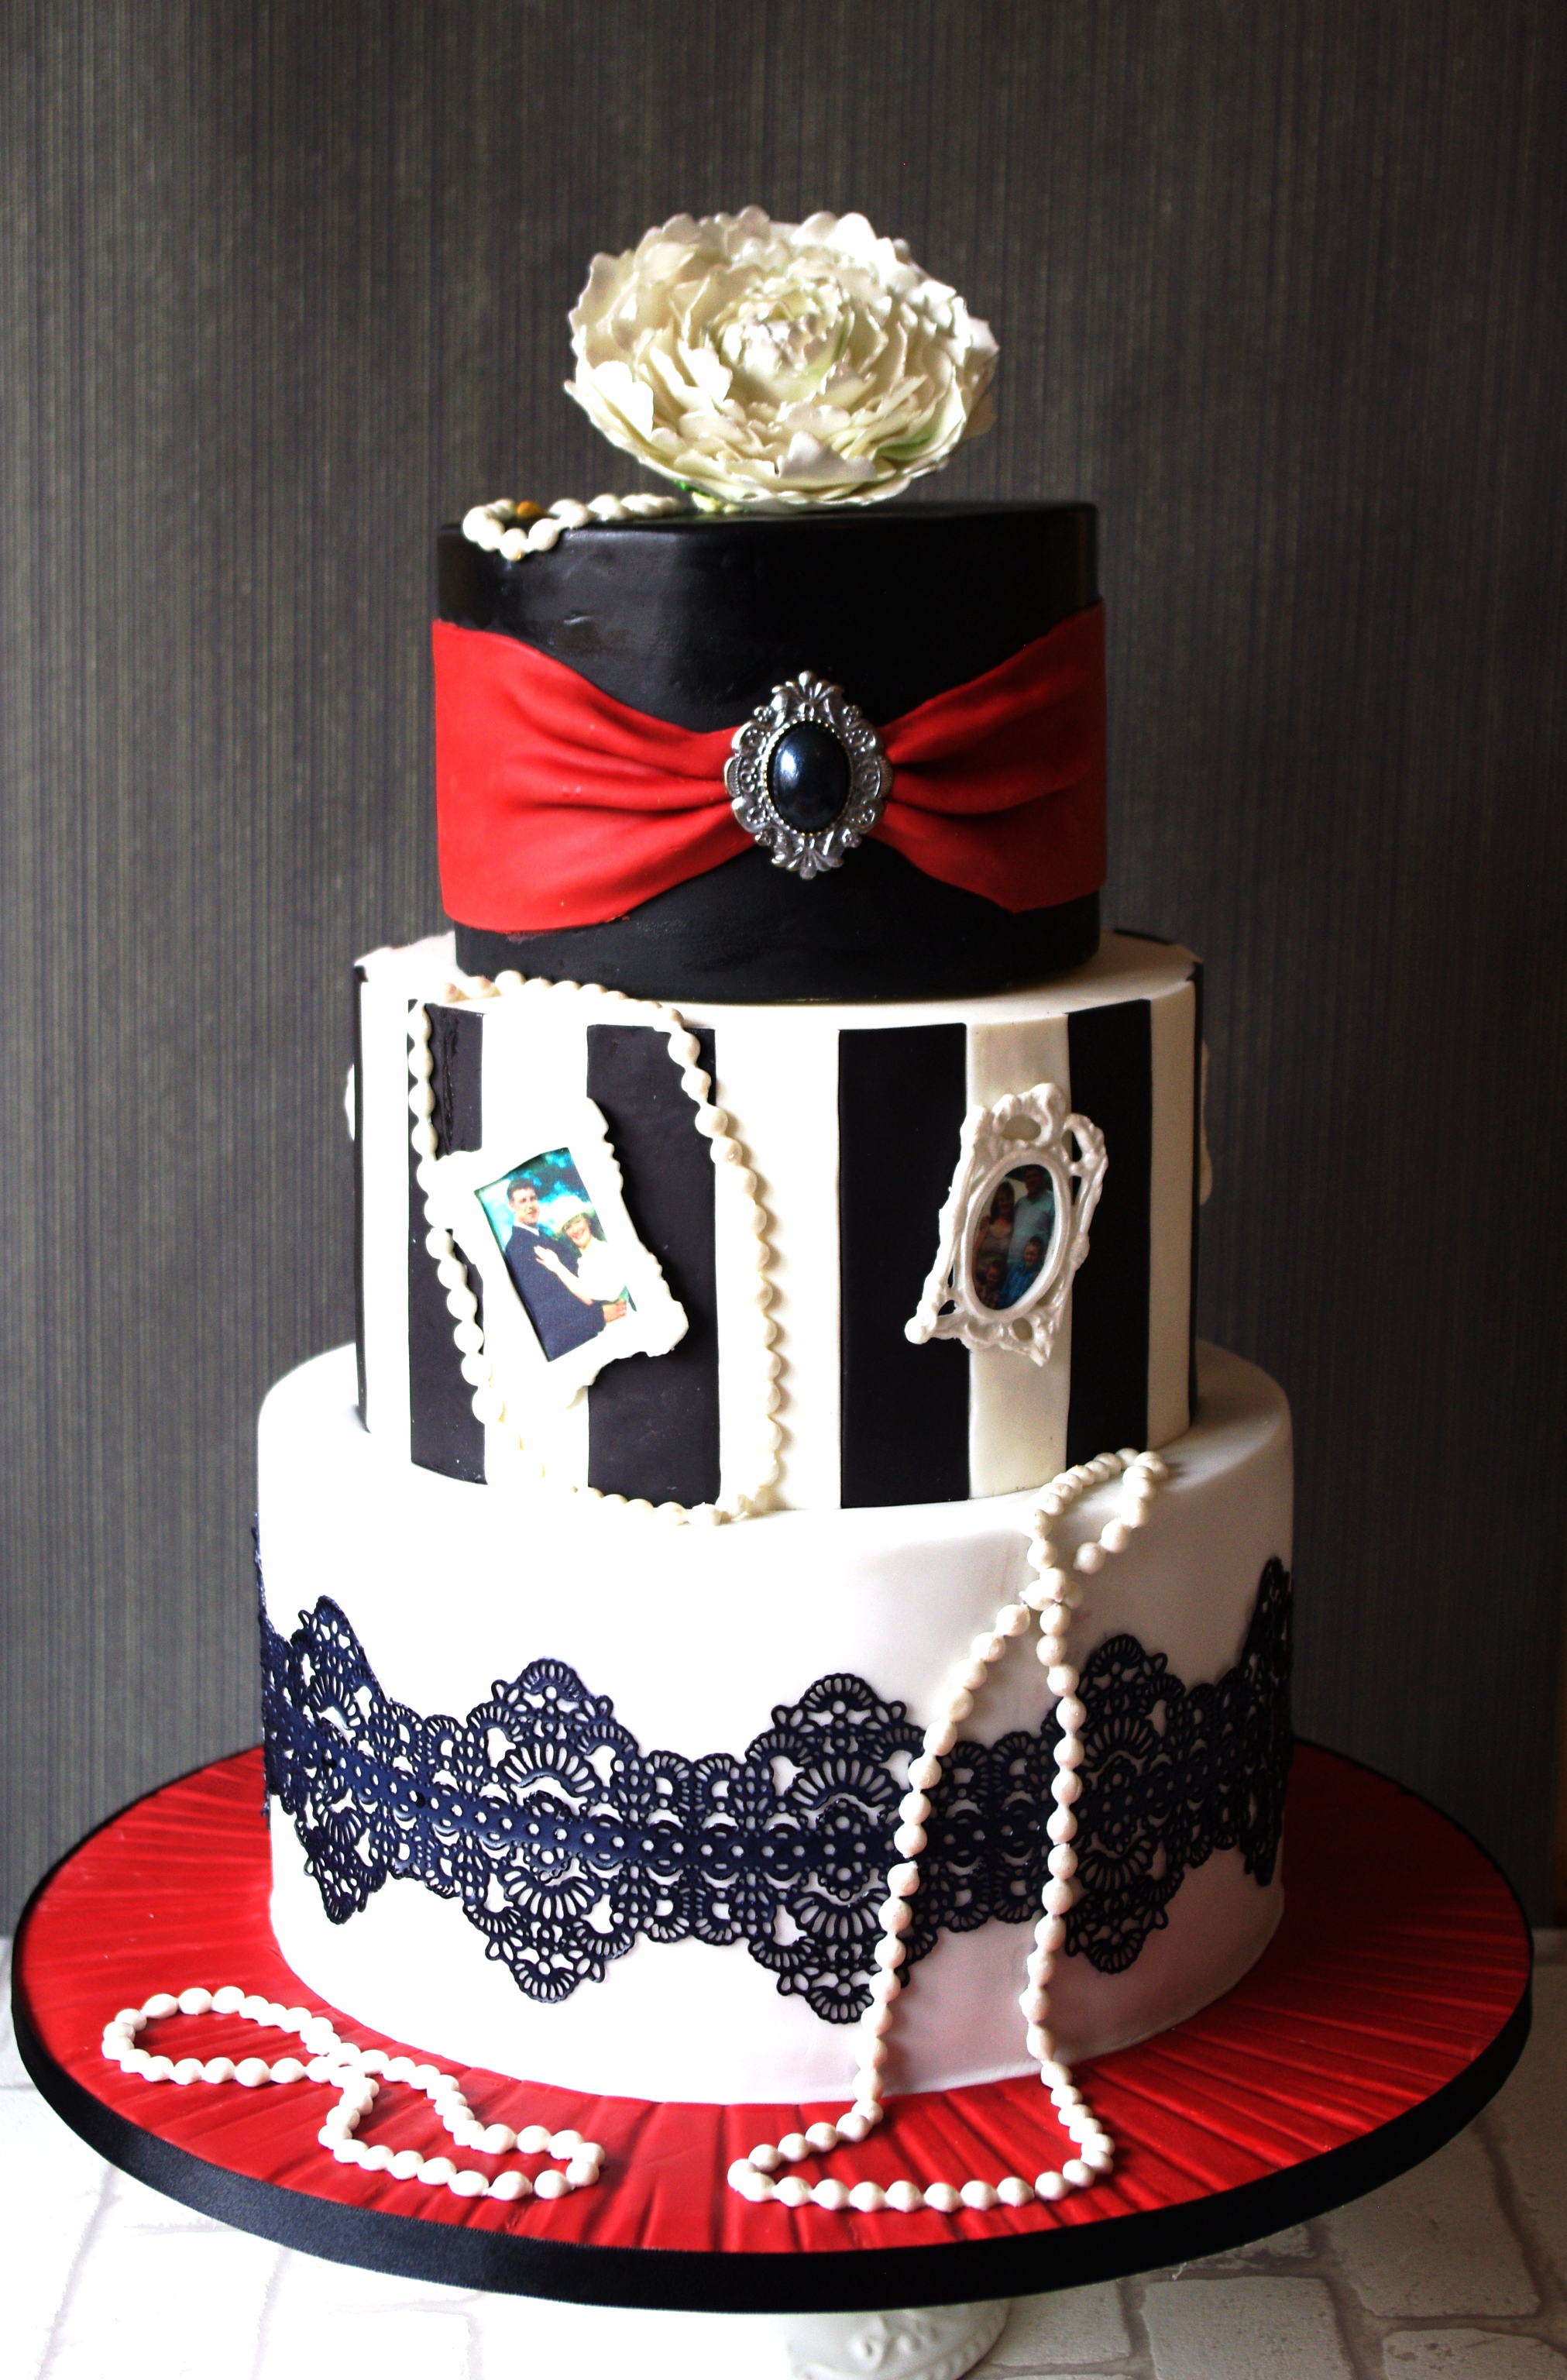 Black, white and red striped cake